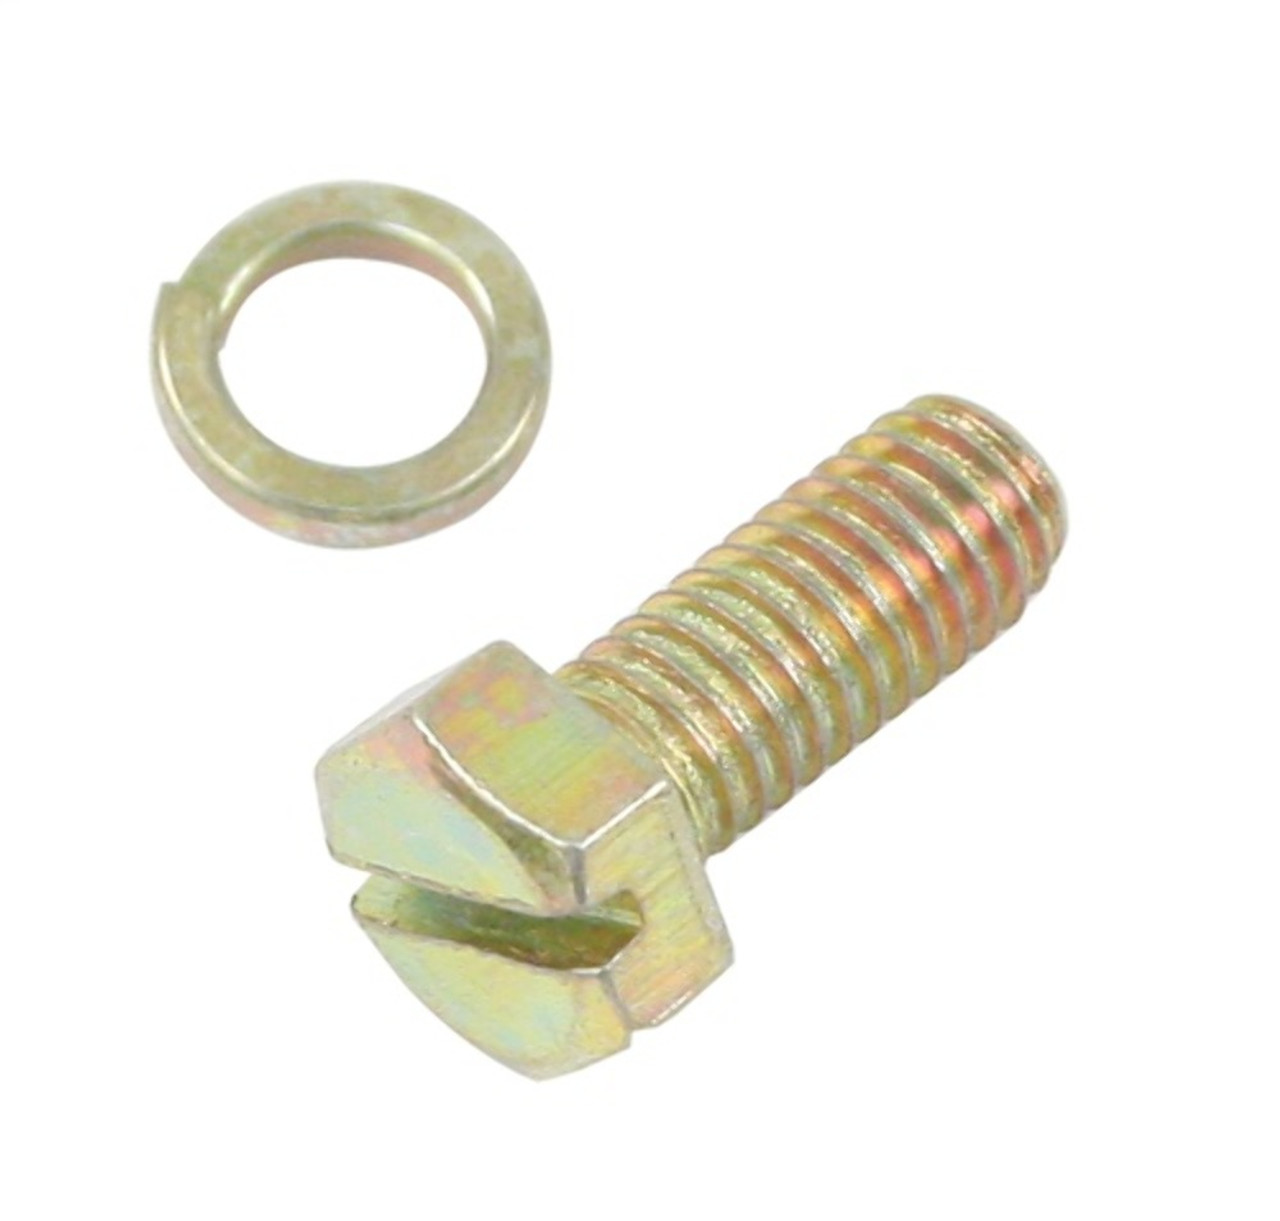 43-5344-0 HOLD DOWN SCREW/WASHER,2PC